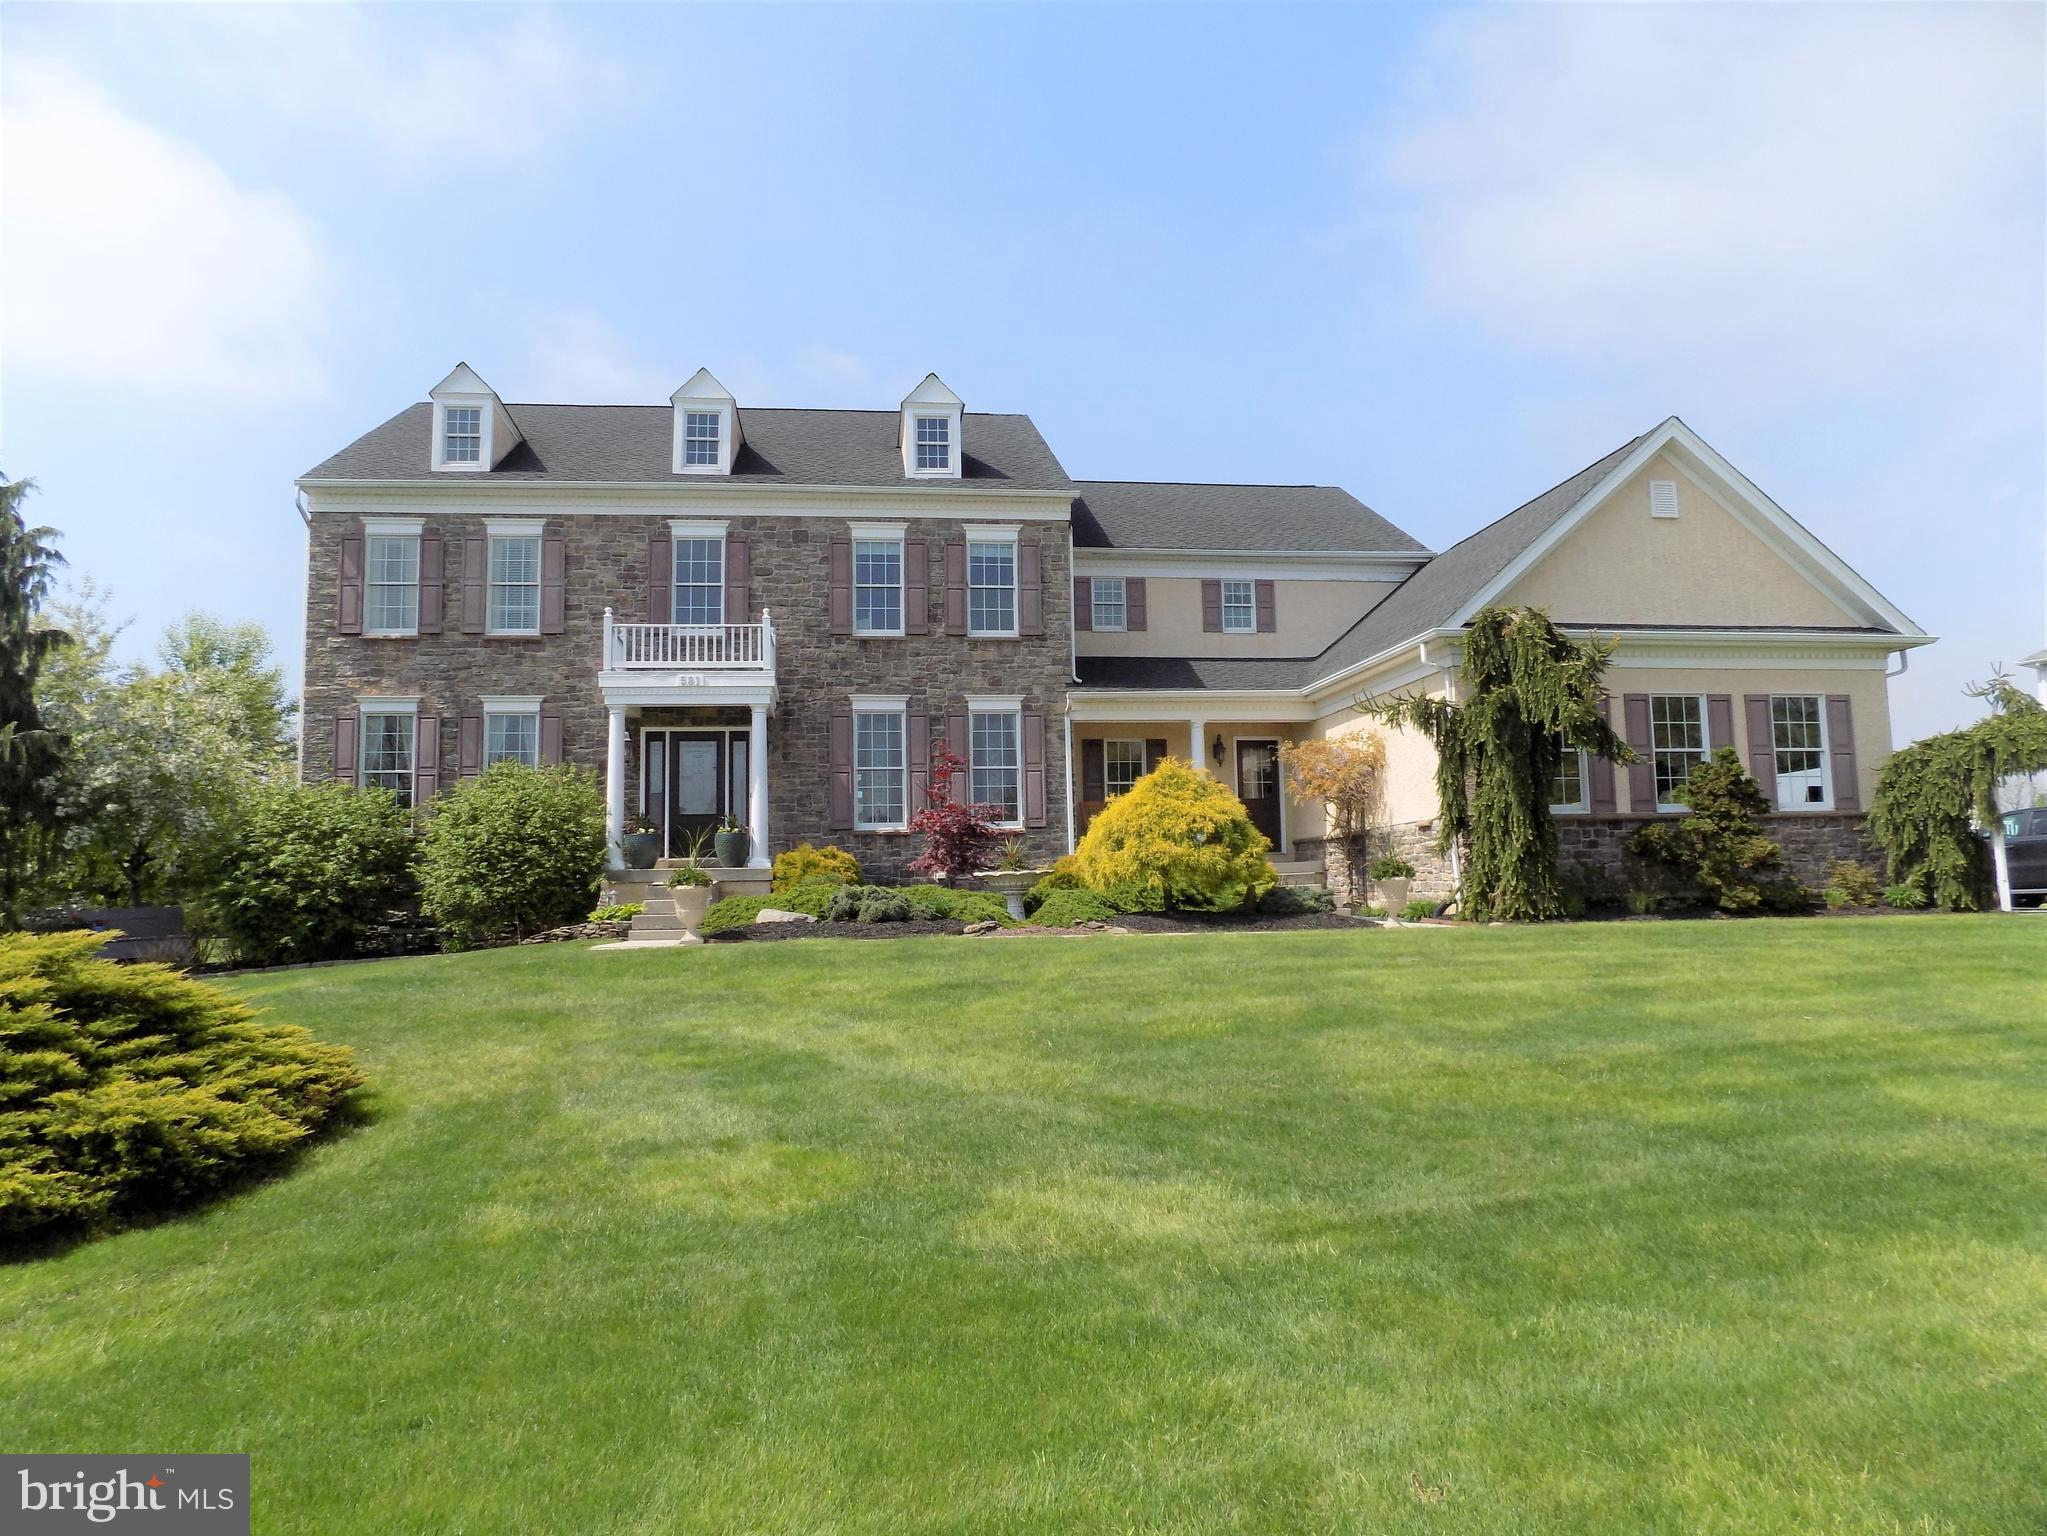 581 ROCKBRIDGE ROAD, NAZARETH, PA 18064